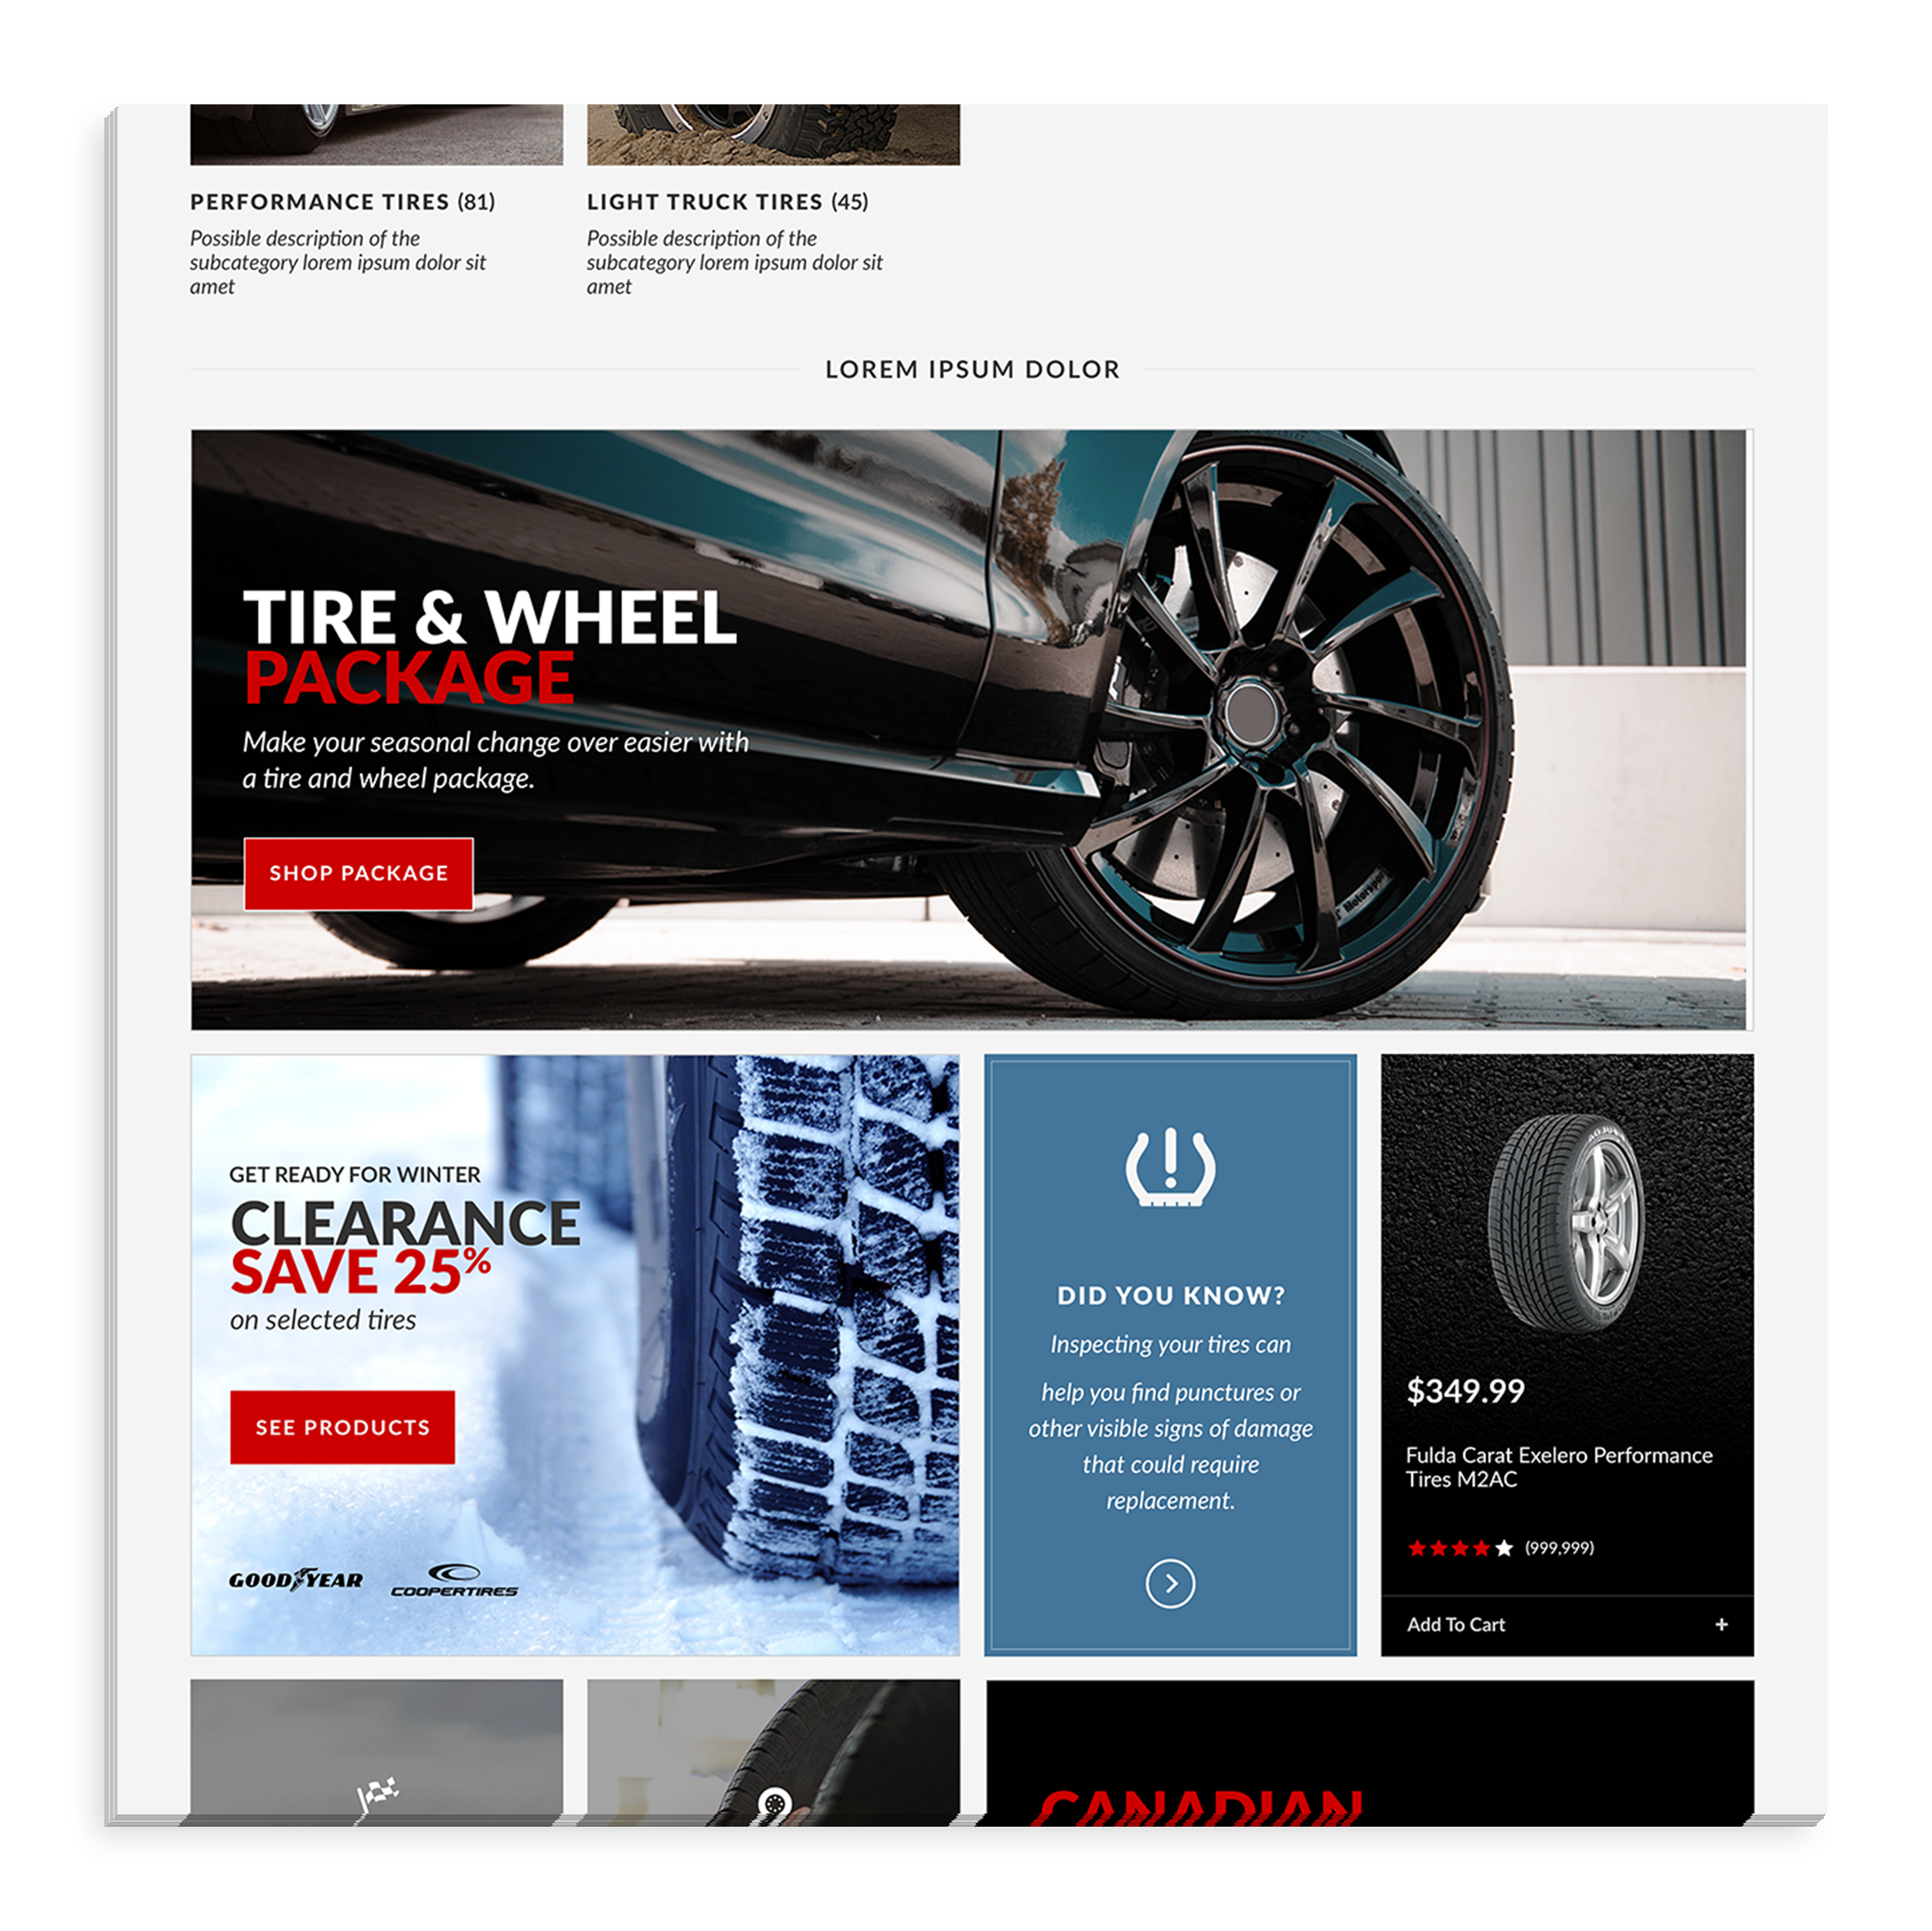 - Canadian Tire's old website displayed a lot of ads paid for by sponsors. Instead of displaying ads in an iFrame, we incorporated the them in the product feed to mimic the look of the weekly flyer.